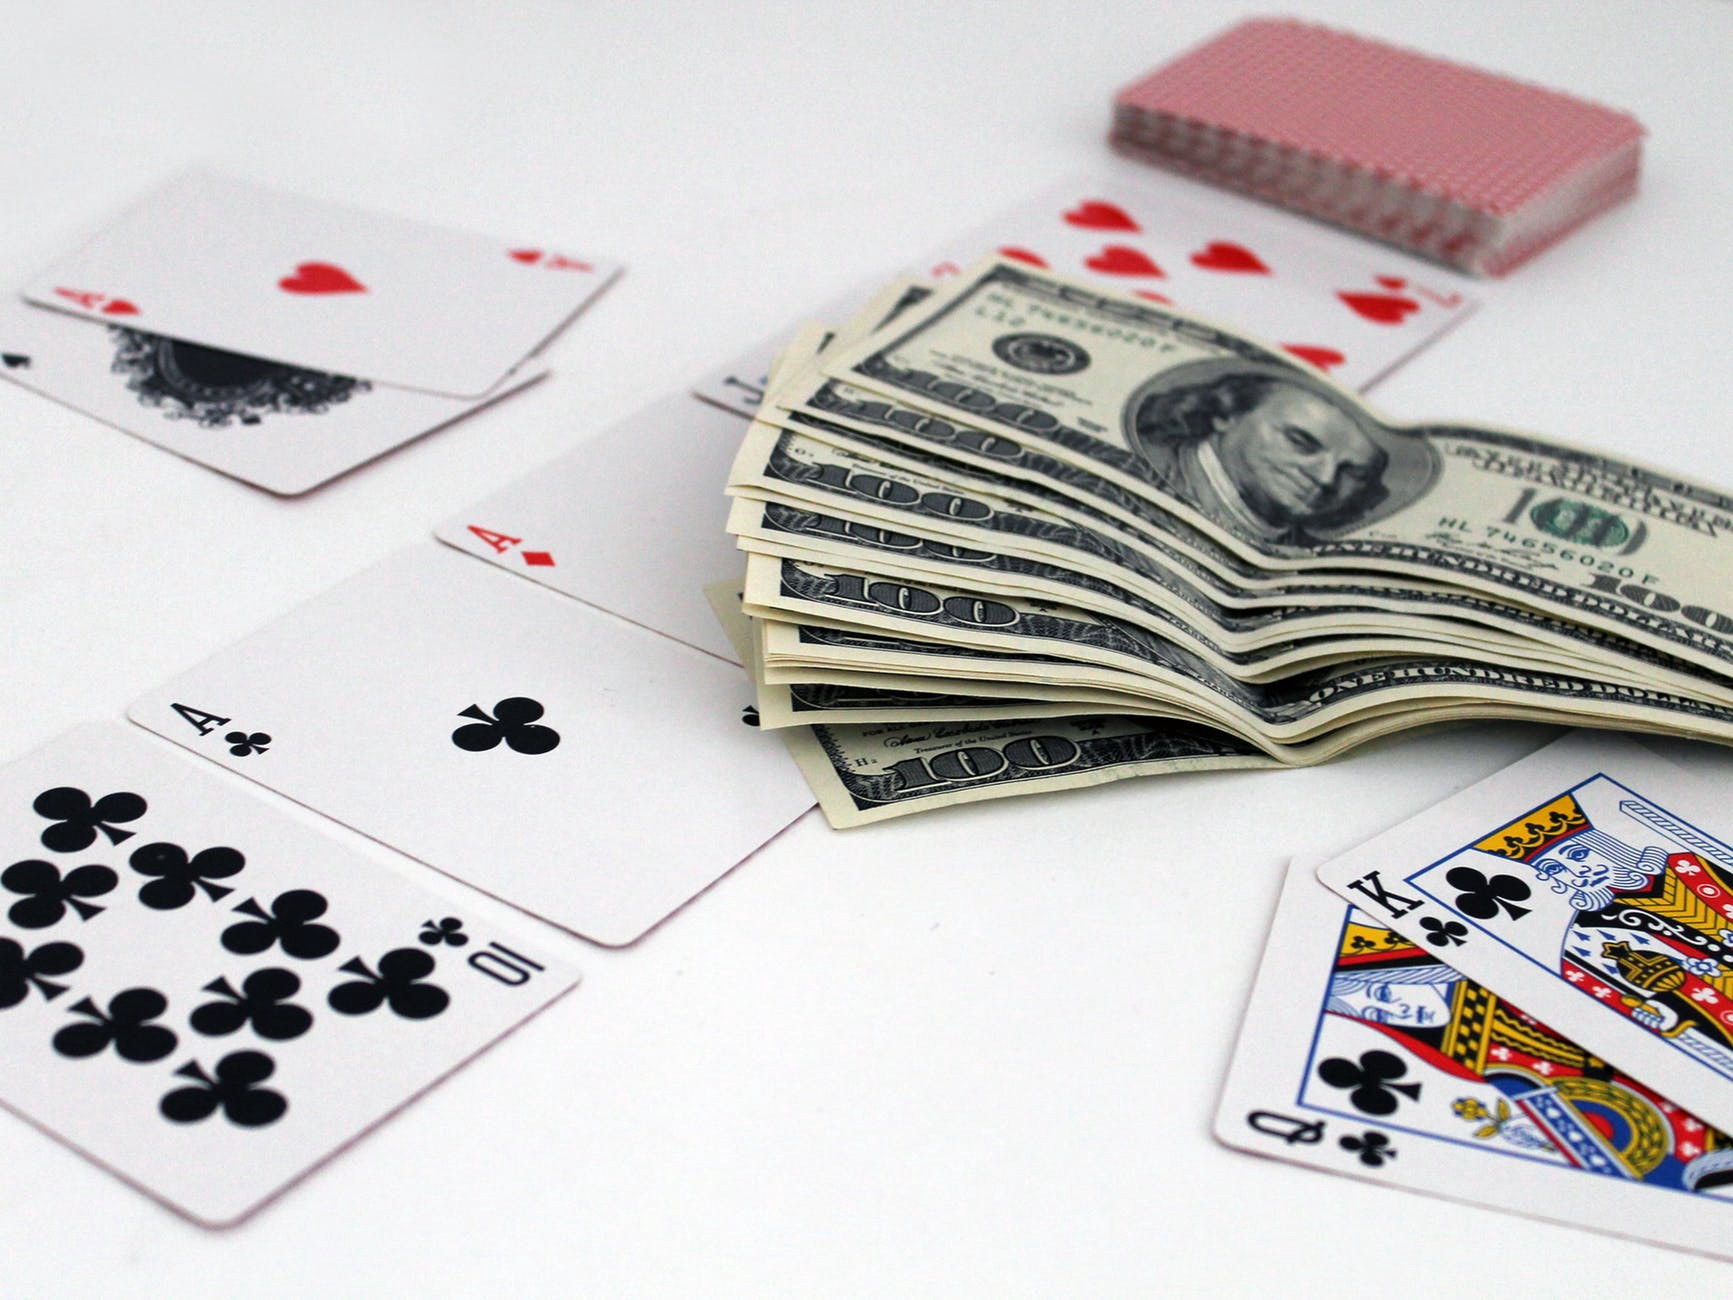 What are the advantages of playing Online Poker? | by James Alex | Medium